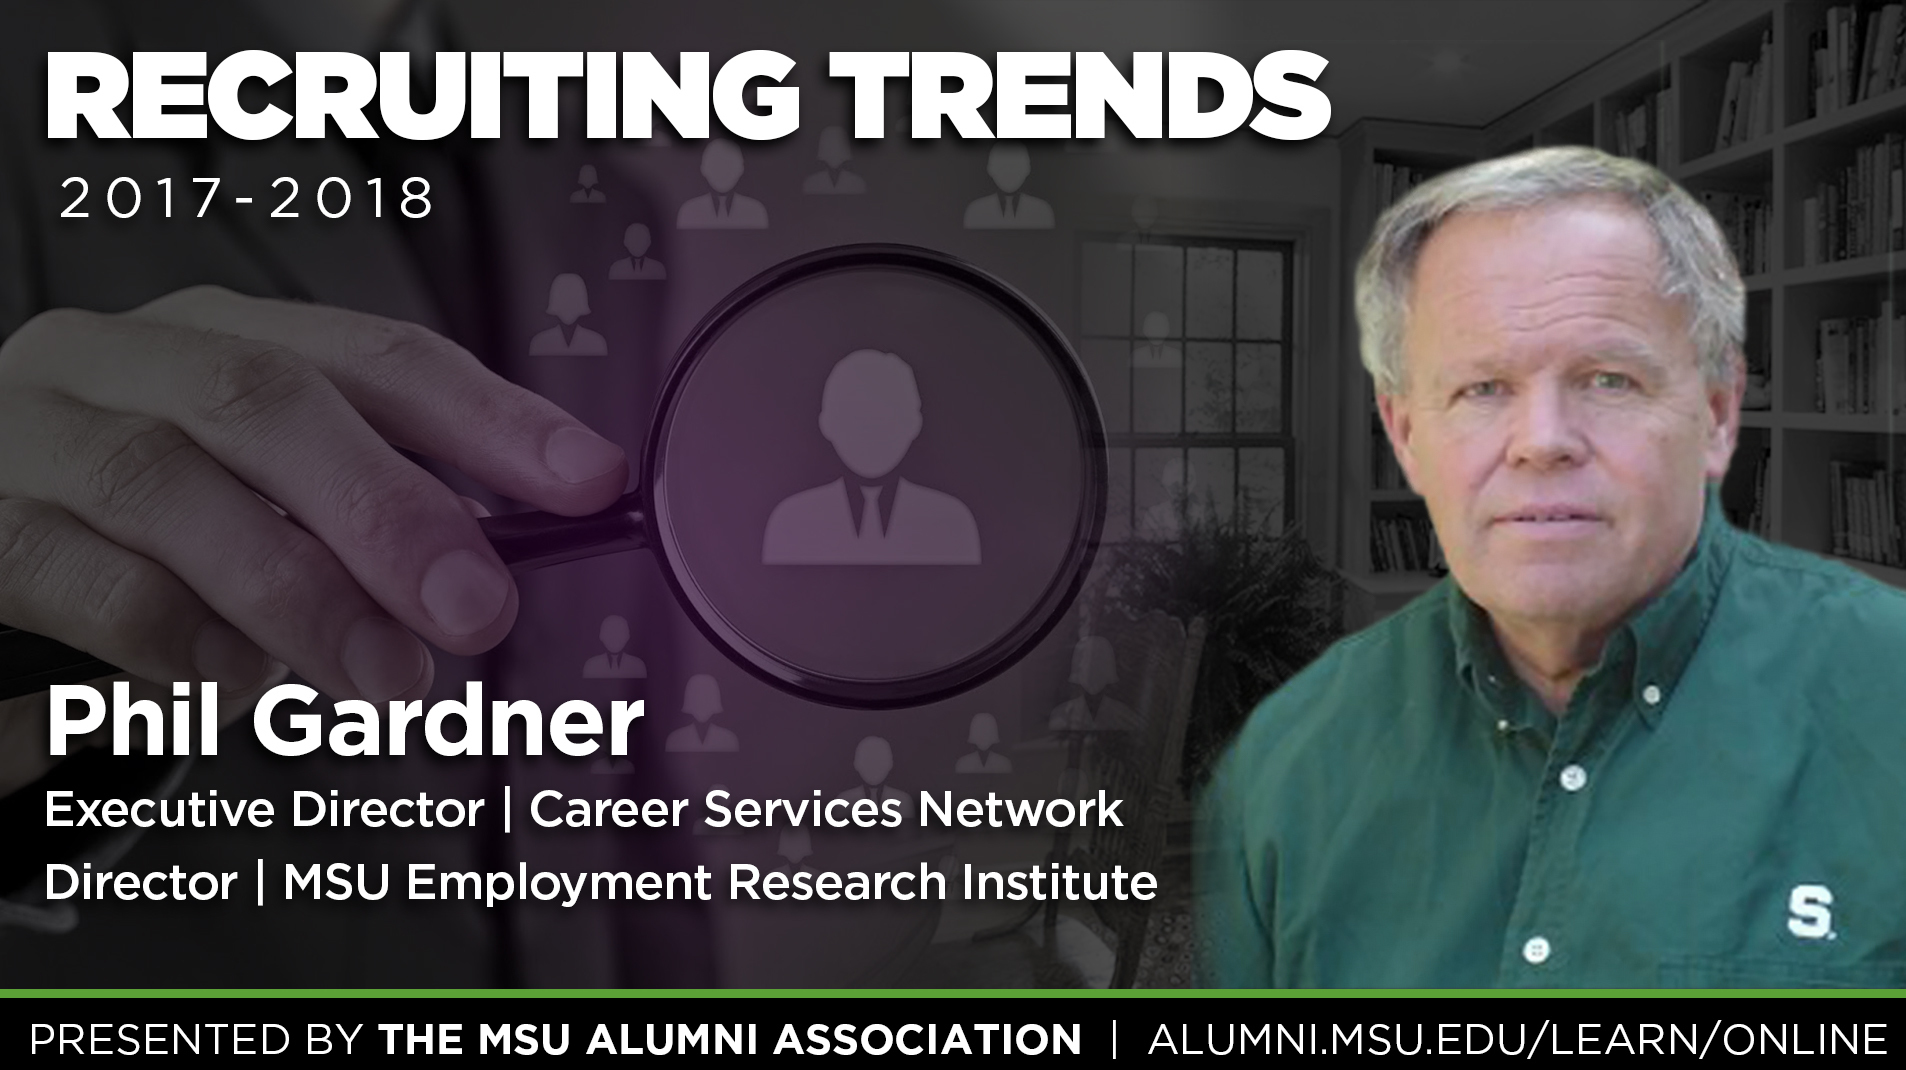 livestream cover image for Recruiting Trends